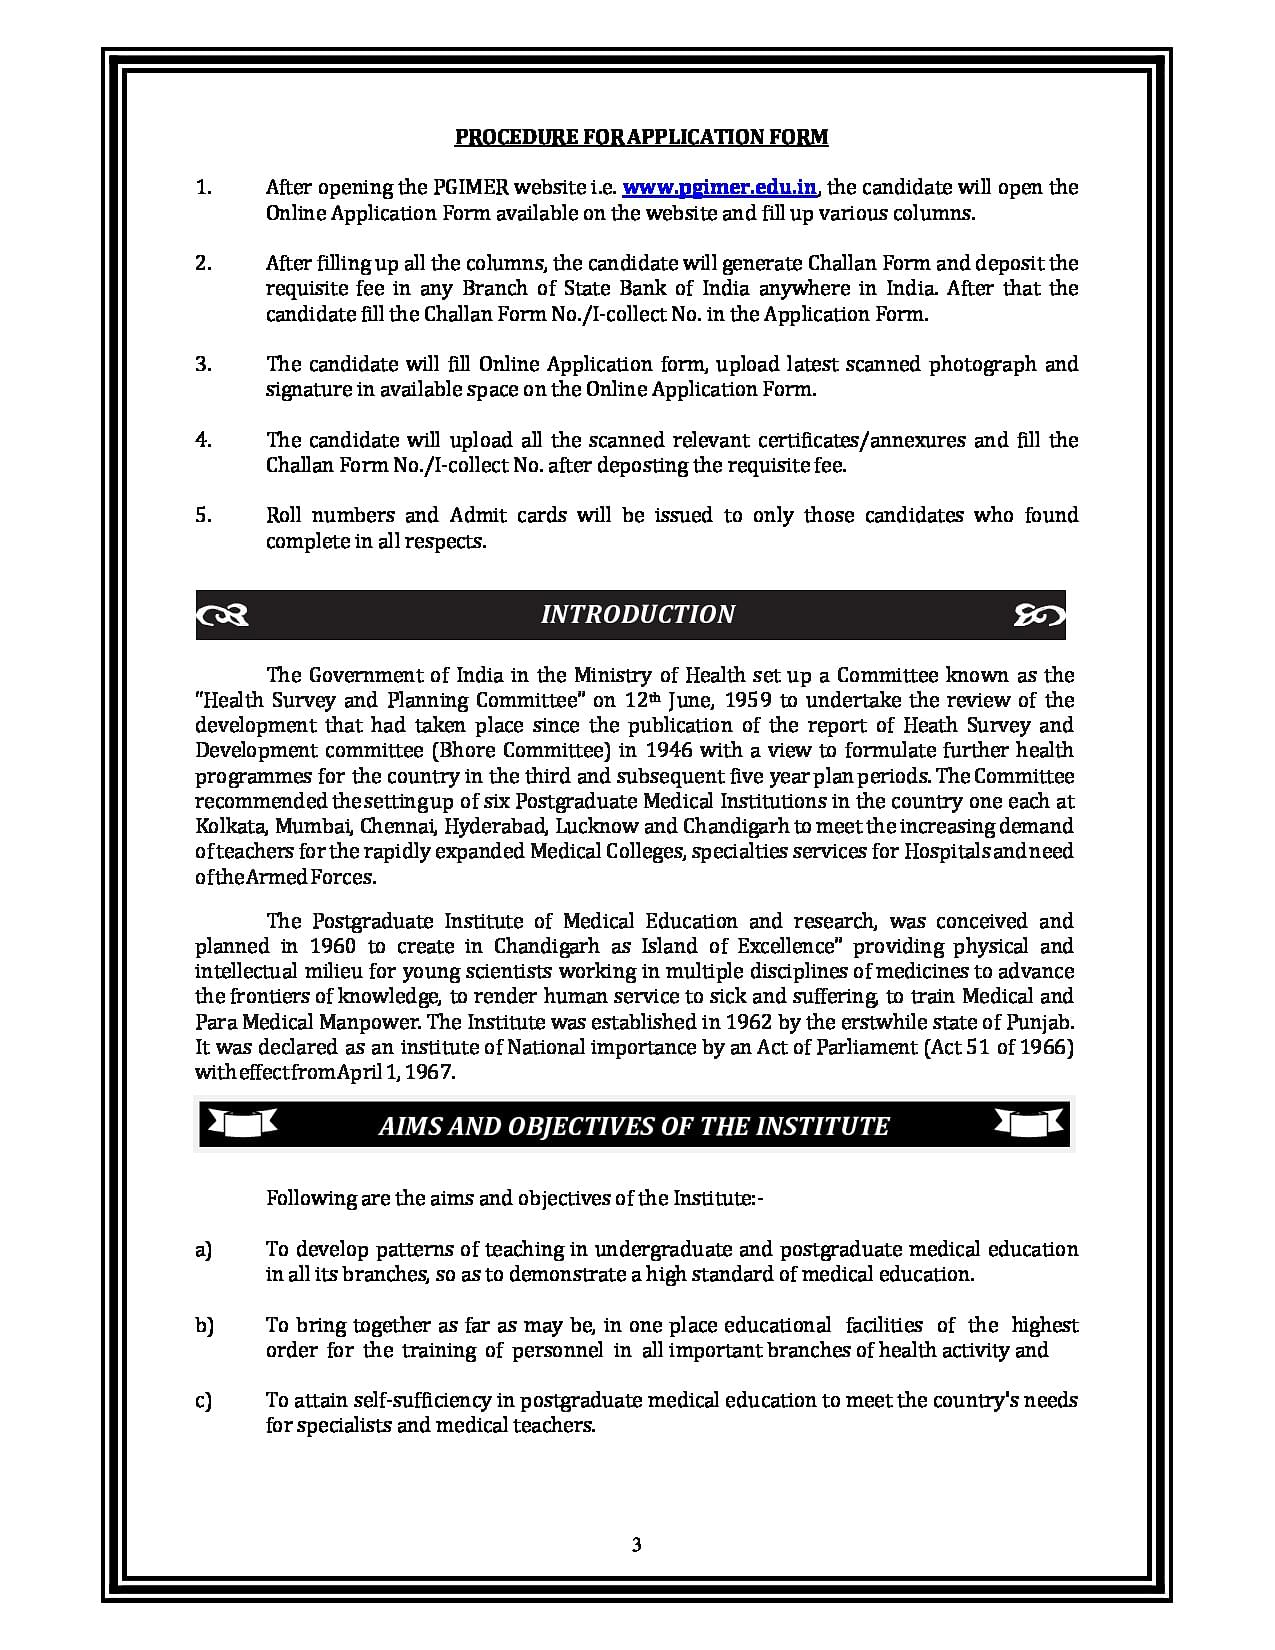 PGIMER, Chandigarh - Course, Fees Structure, Admissions, Results